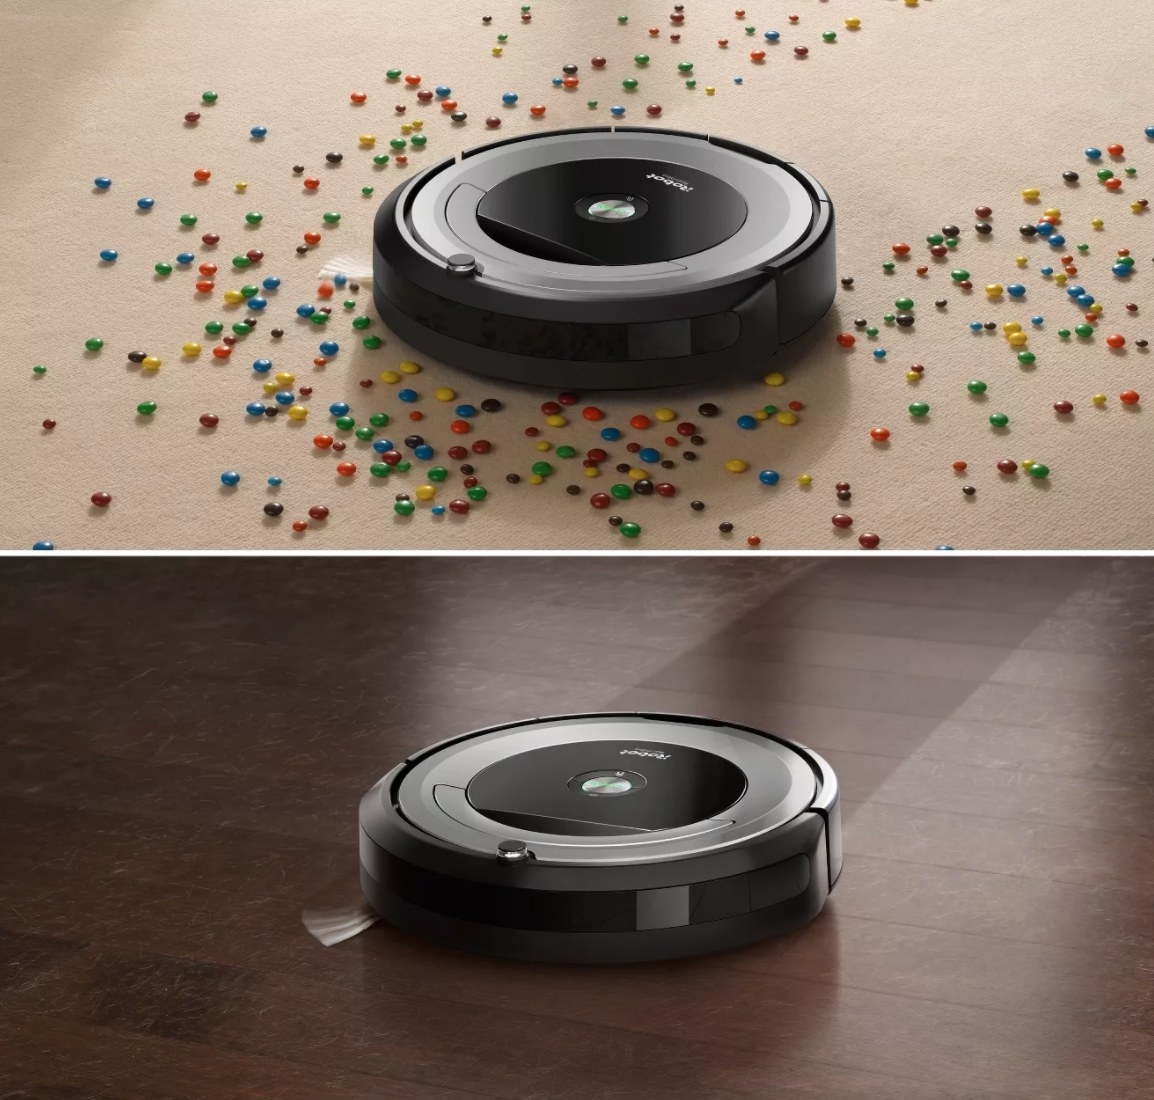 The roomba vacuum being used on both carpet and hardwood floor